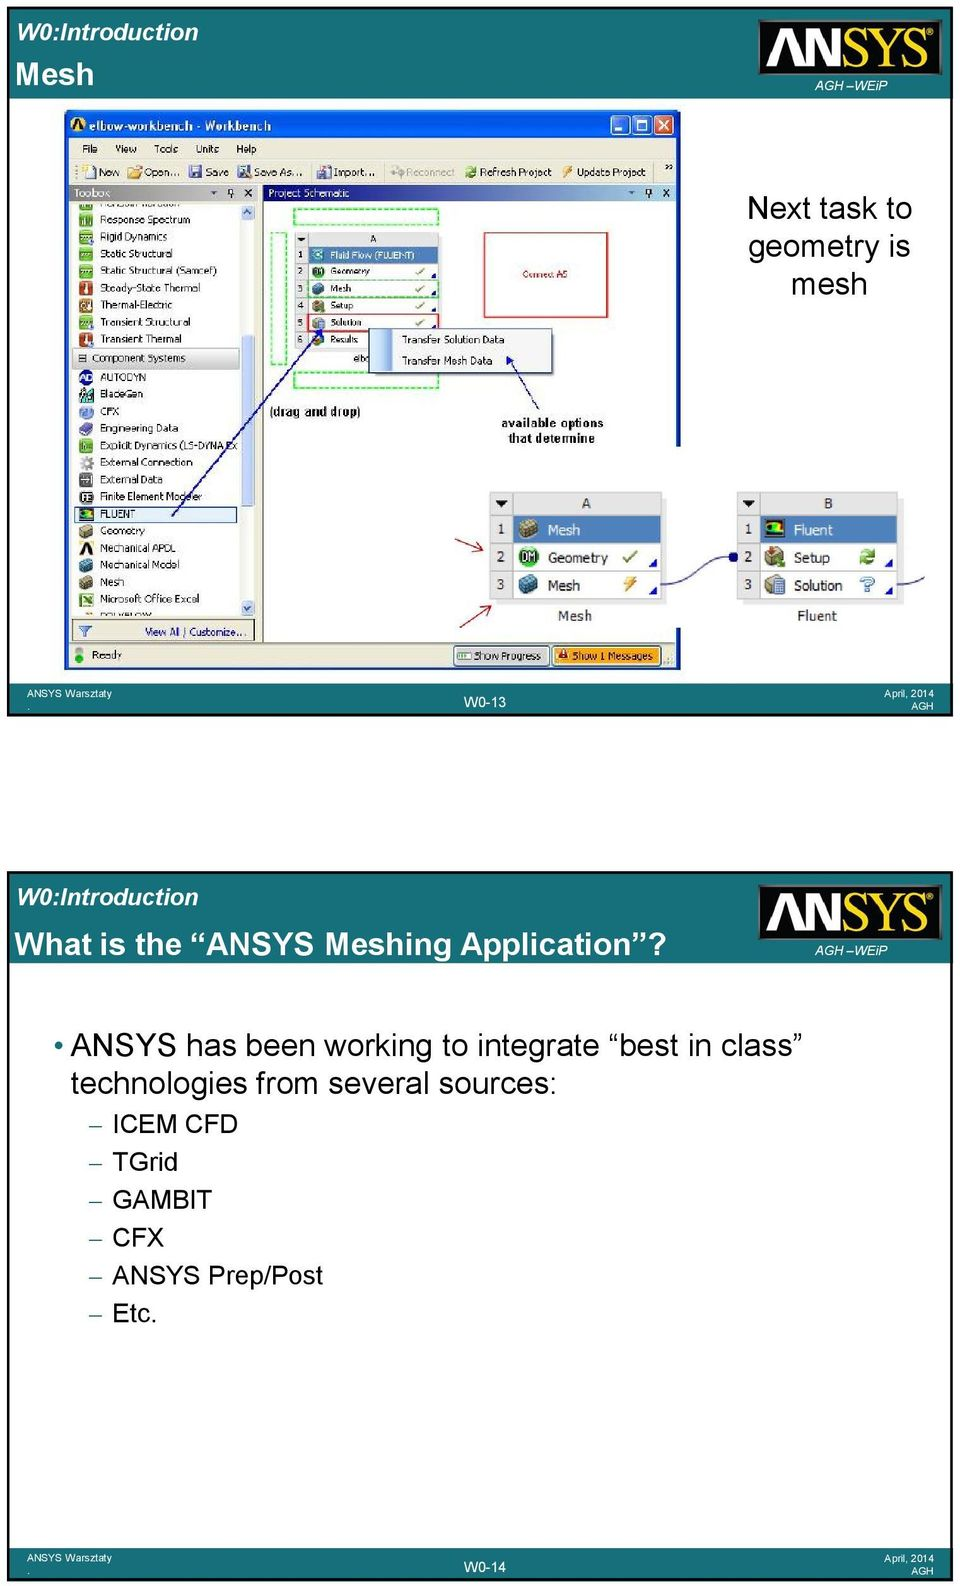 WEiP ANSYS has been working to integrate best in class